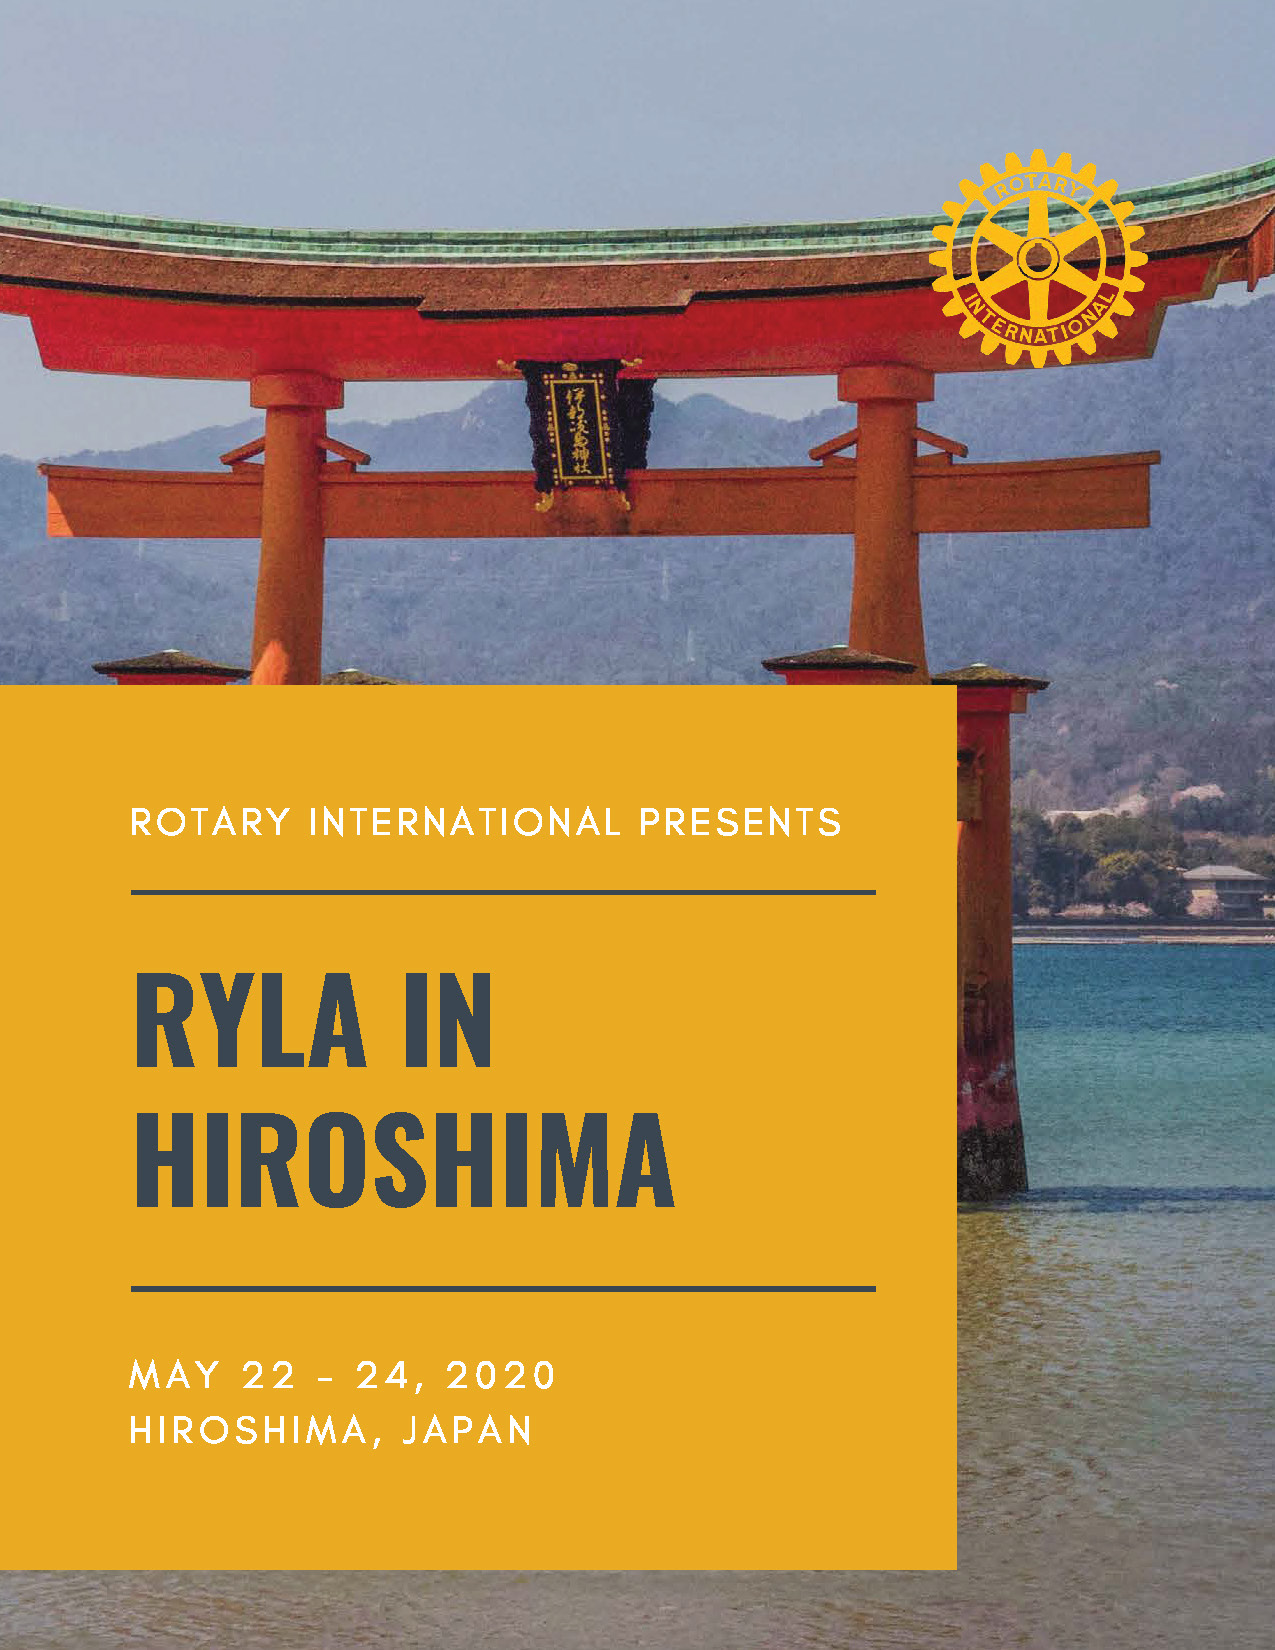 RYLA_IN_HIROSHIMA_Reduced_Size_Page_1.jpg